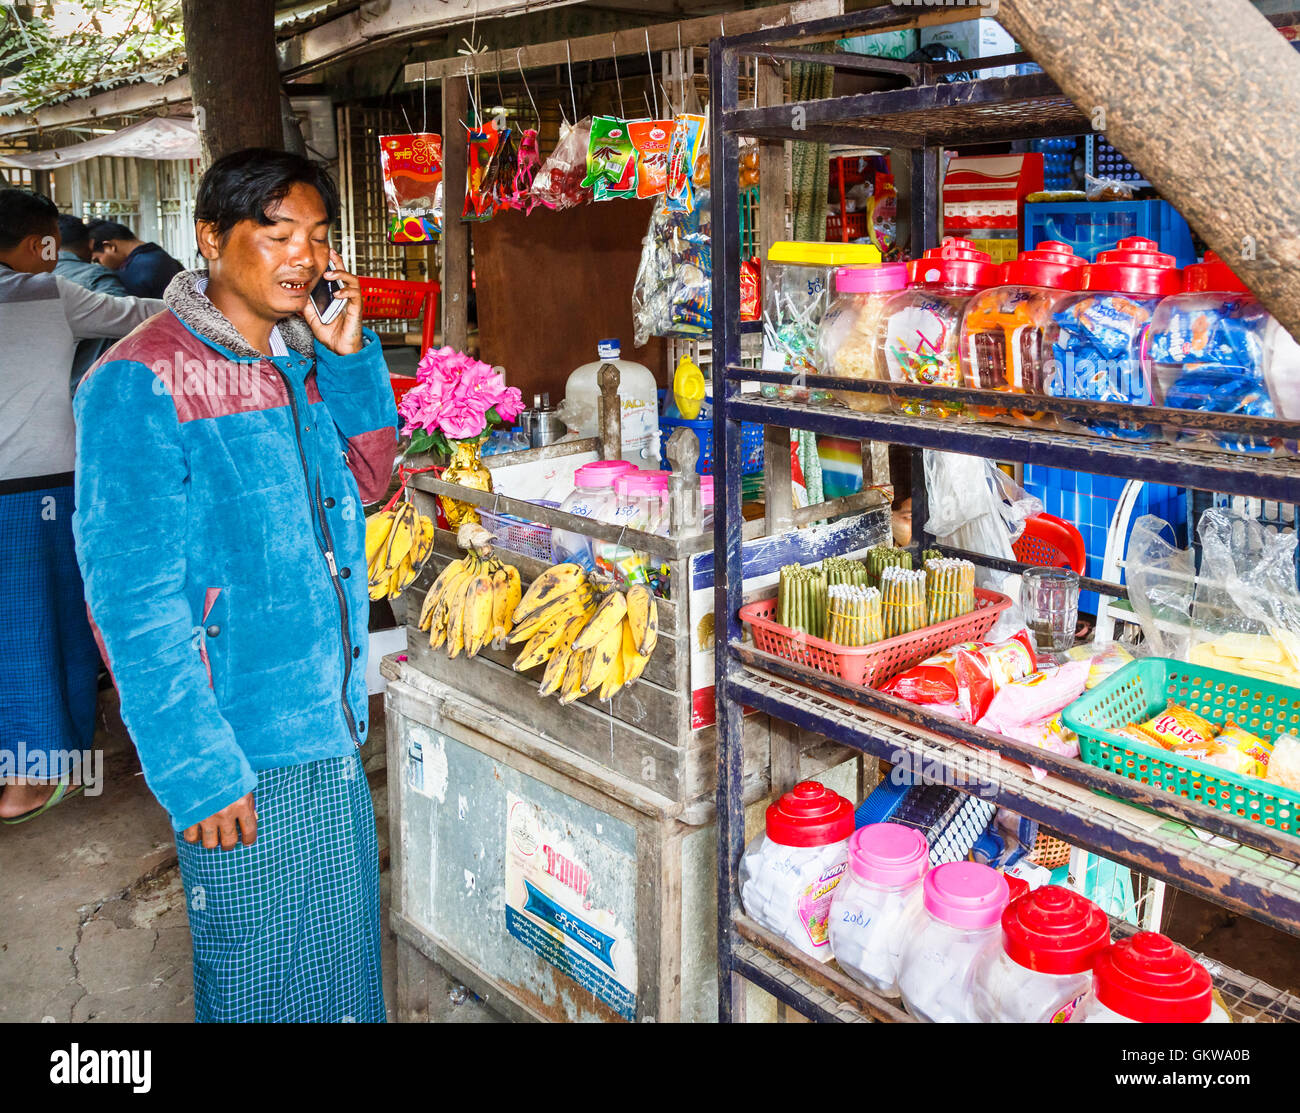 General Store Stock Photos General Store Stock Images: Jade Shop Burma Stock Photos & Jade Shop Burma Stock